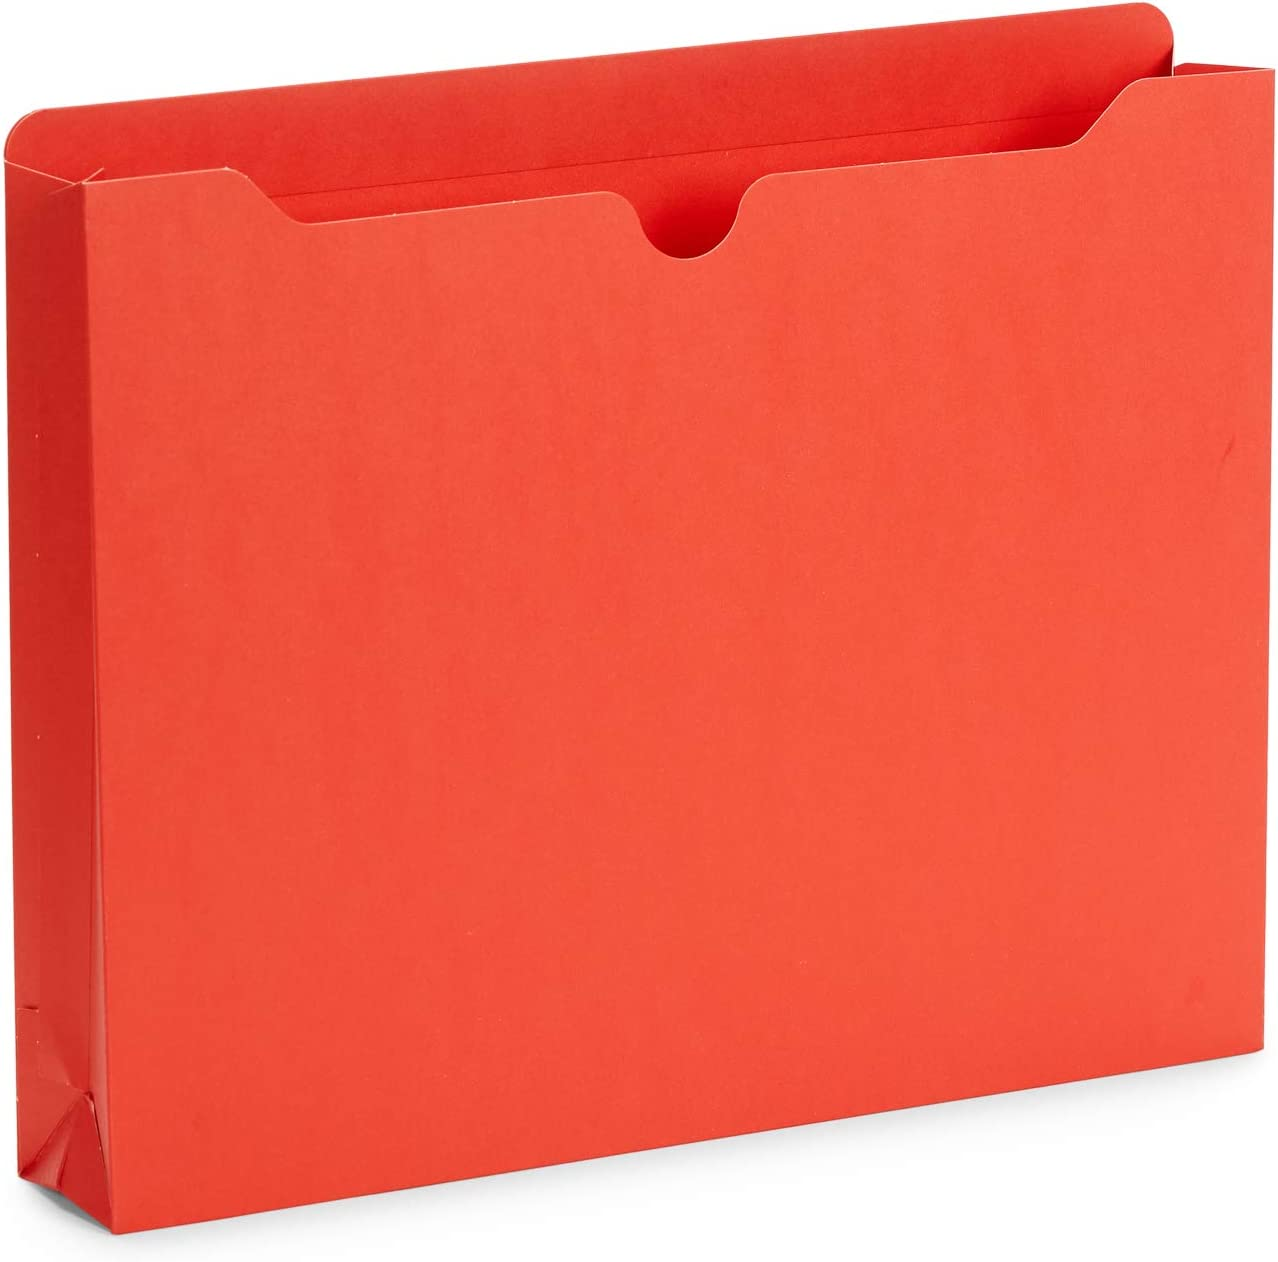 Blue Summit Supplies 2 Inch File Jackets, Reinforced Straight Cut Tab, Heavy Duty 2 Inch Expansion Pocket, Letter Size, Assorted Colors, 25 Pack : Office Products